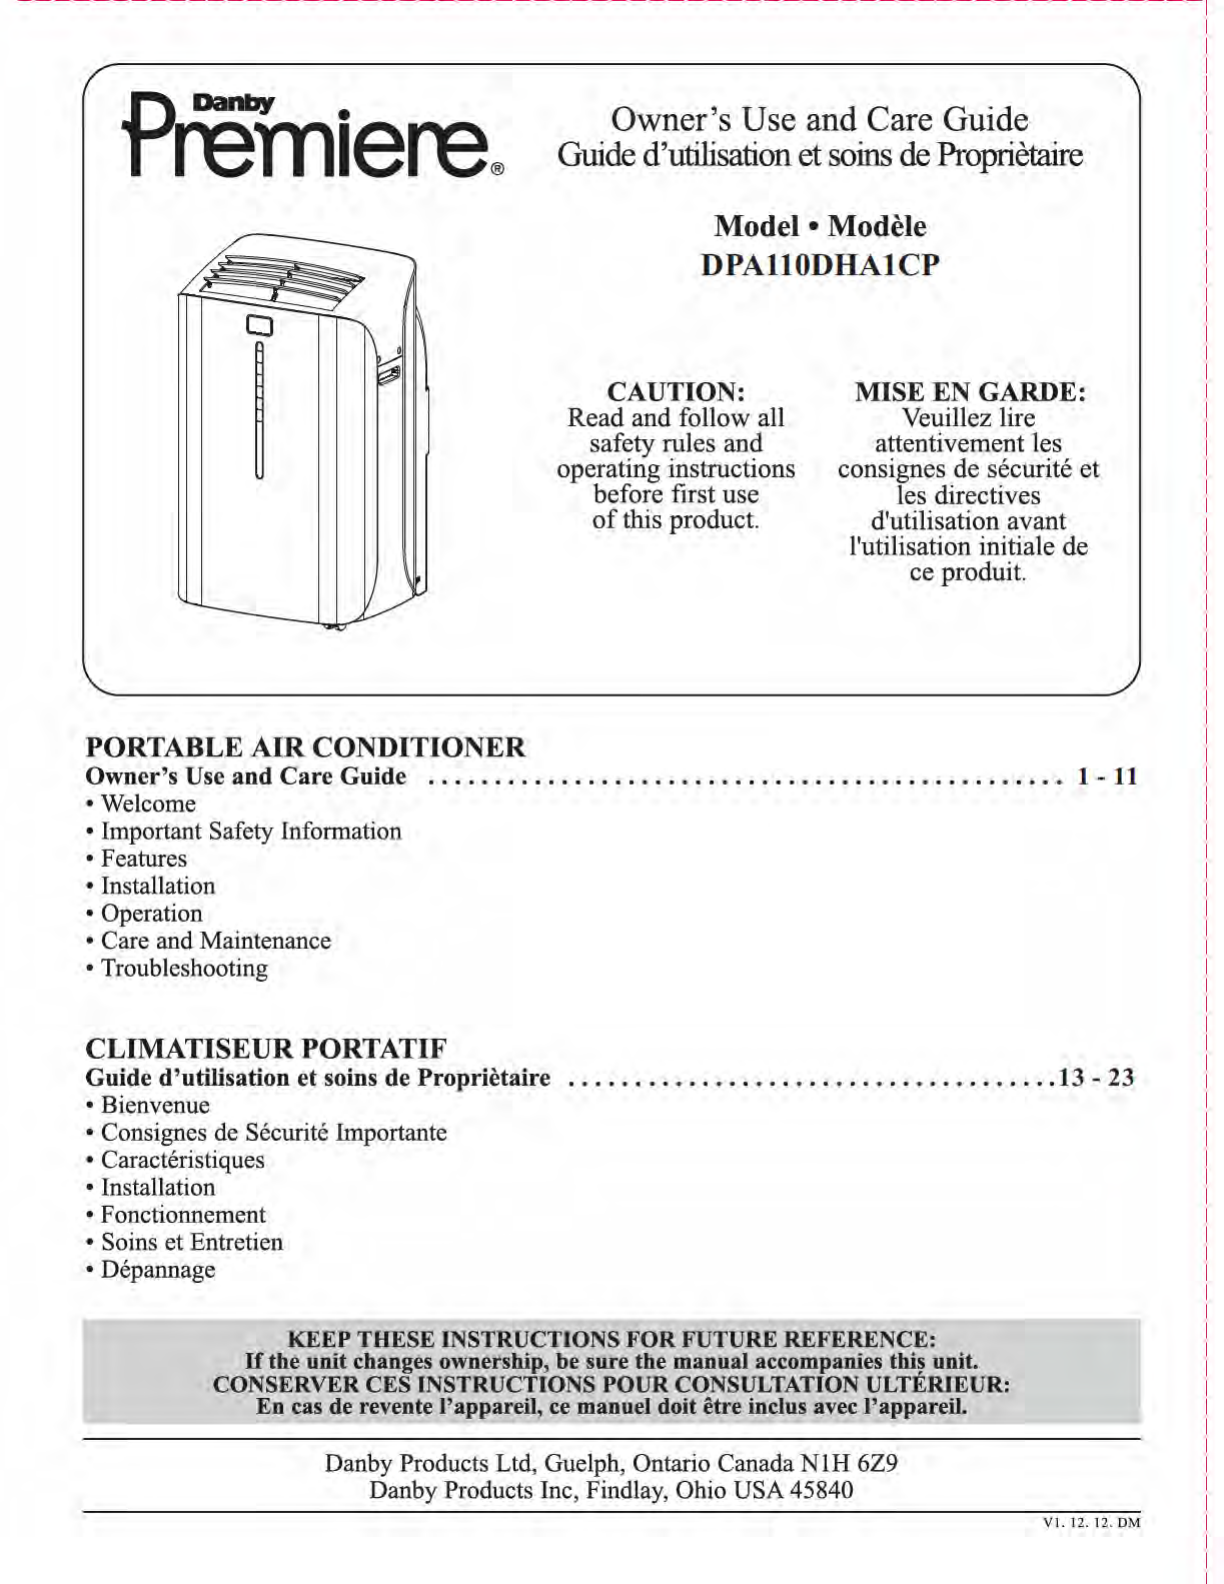 danby air conditioner dpa110dha1cp user guide